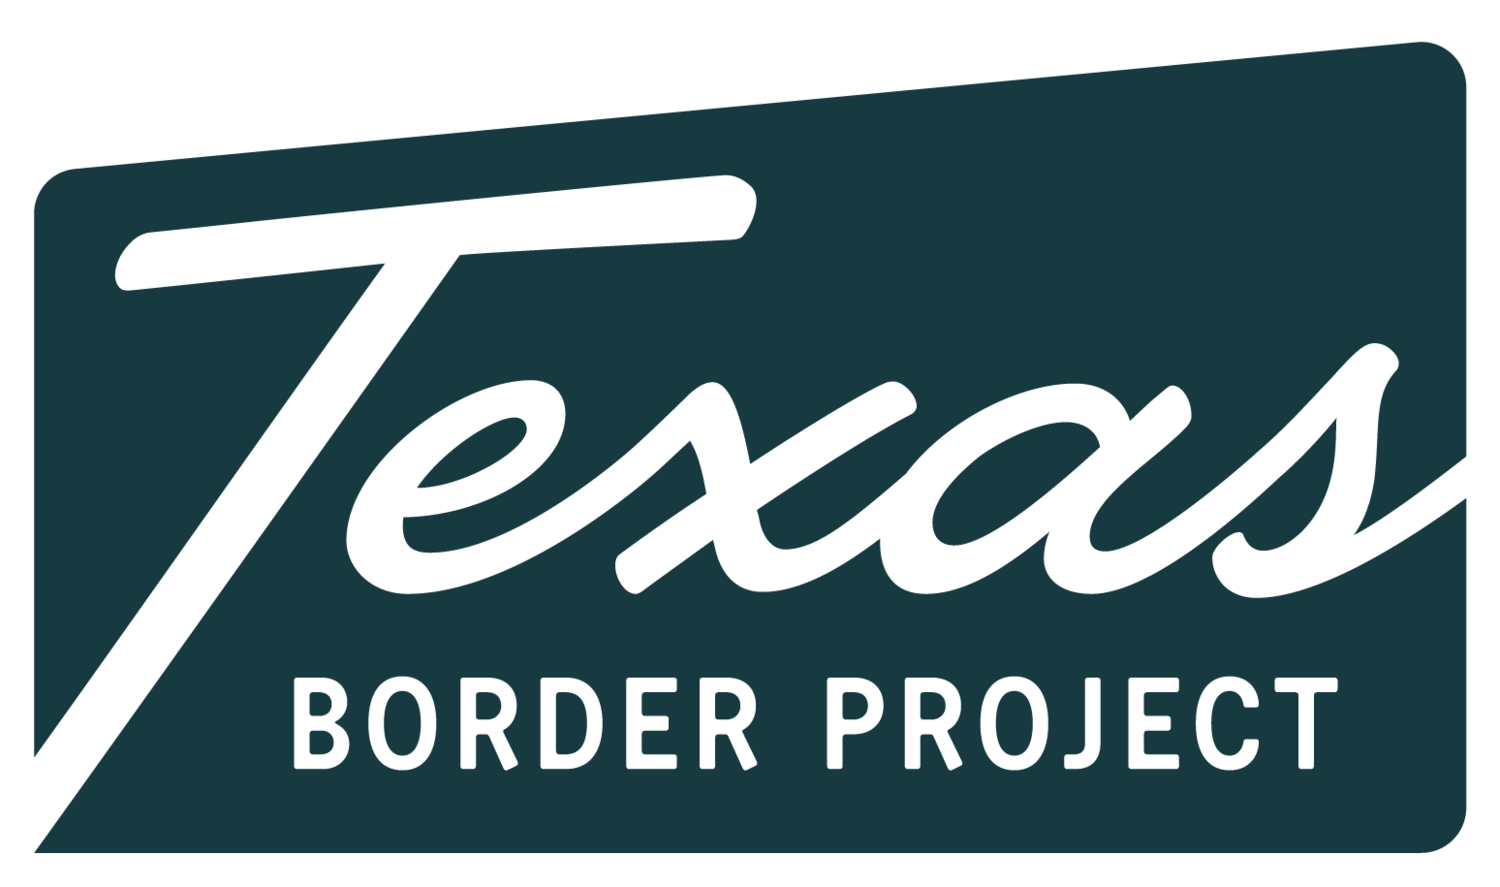 The Texas Border Project